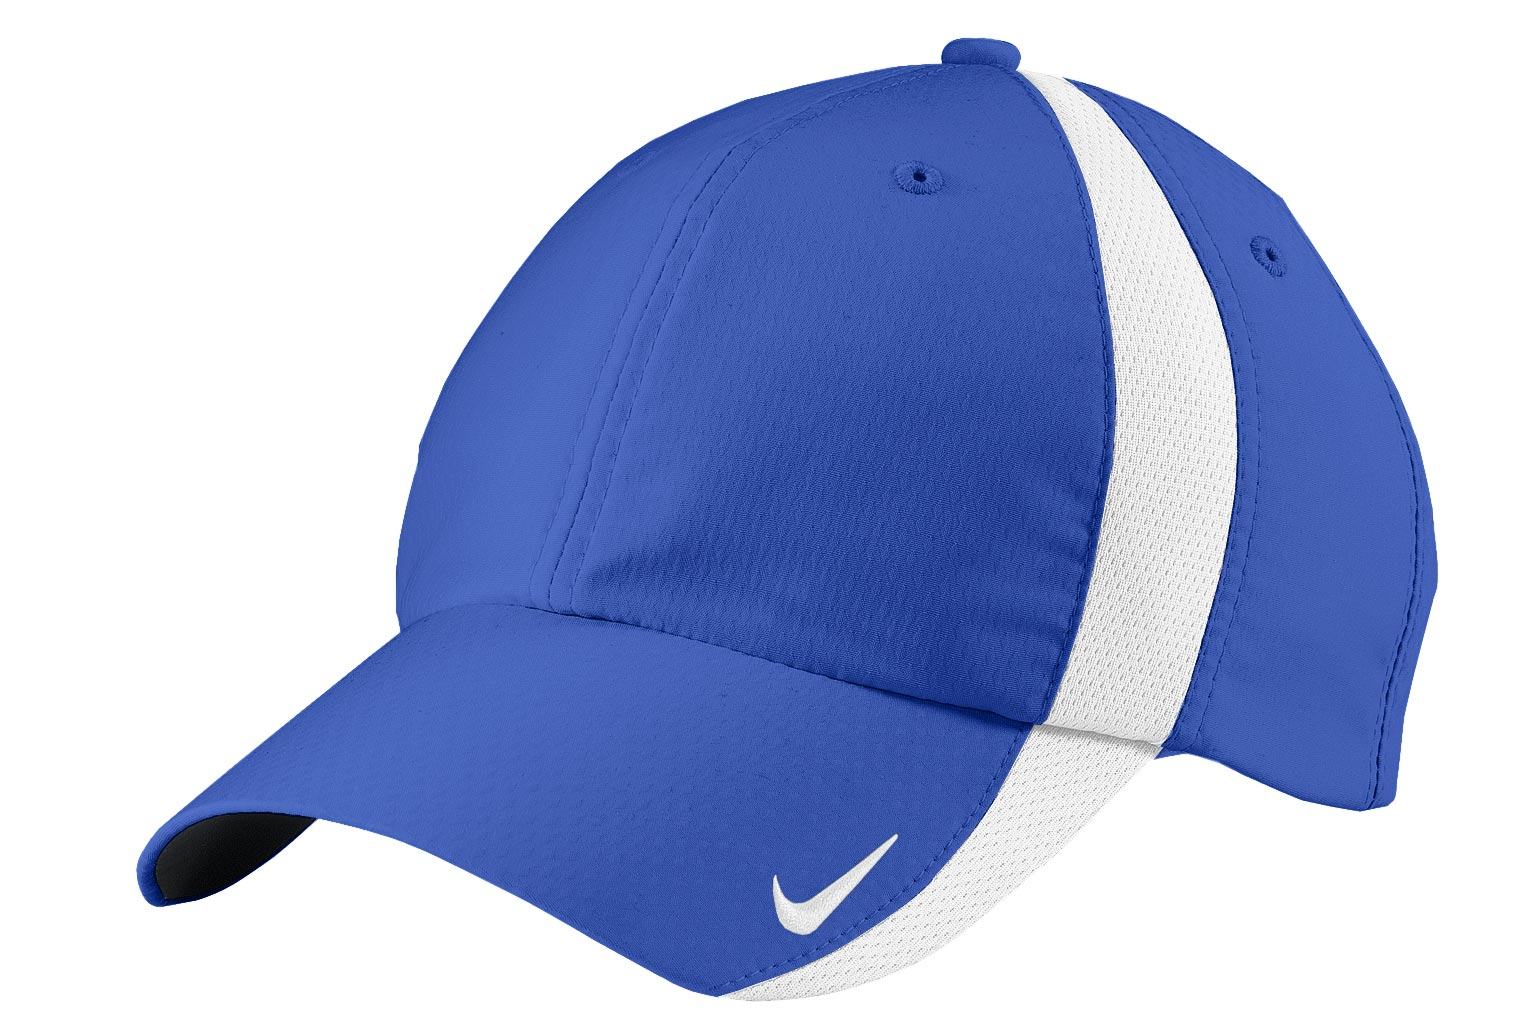 quality design 0e737 49ada NIKE Golf Sphere Dry Cap - Design Online